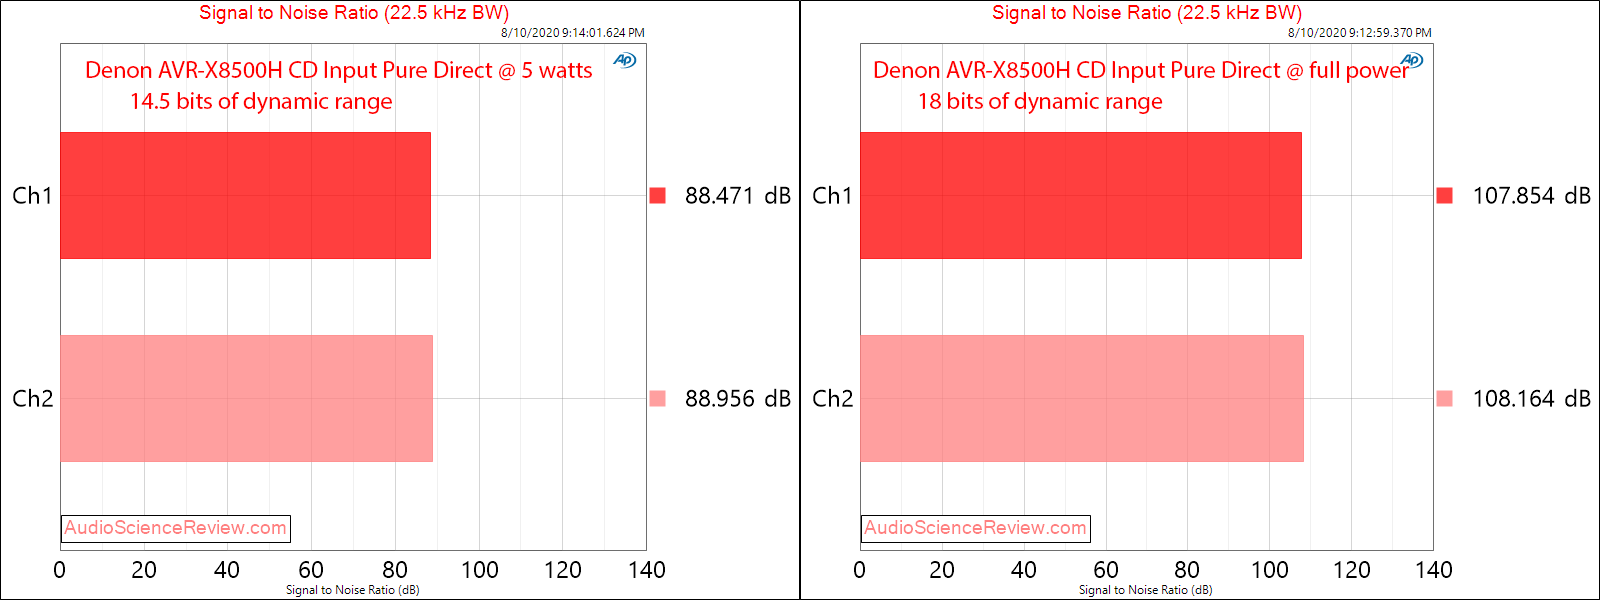 Denon AVR-X8500H Surround Sound AVR CD Input Amplifier SNR Audio Measurements.png